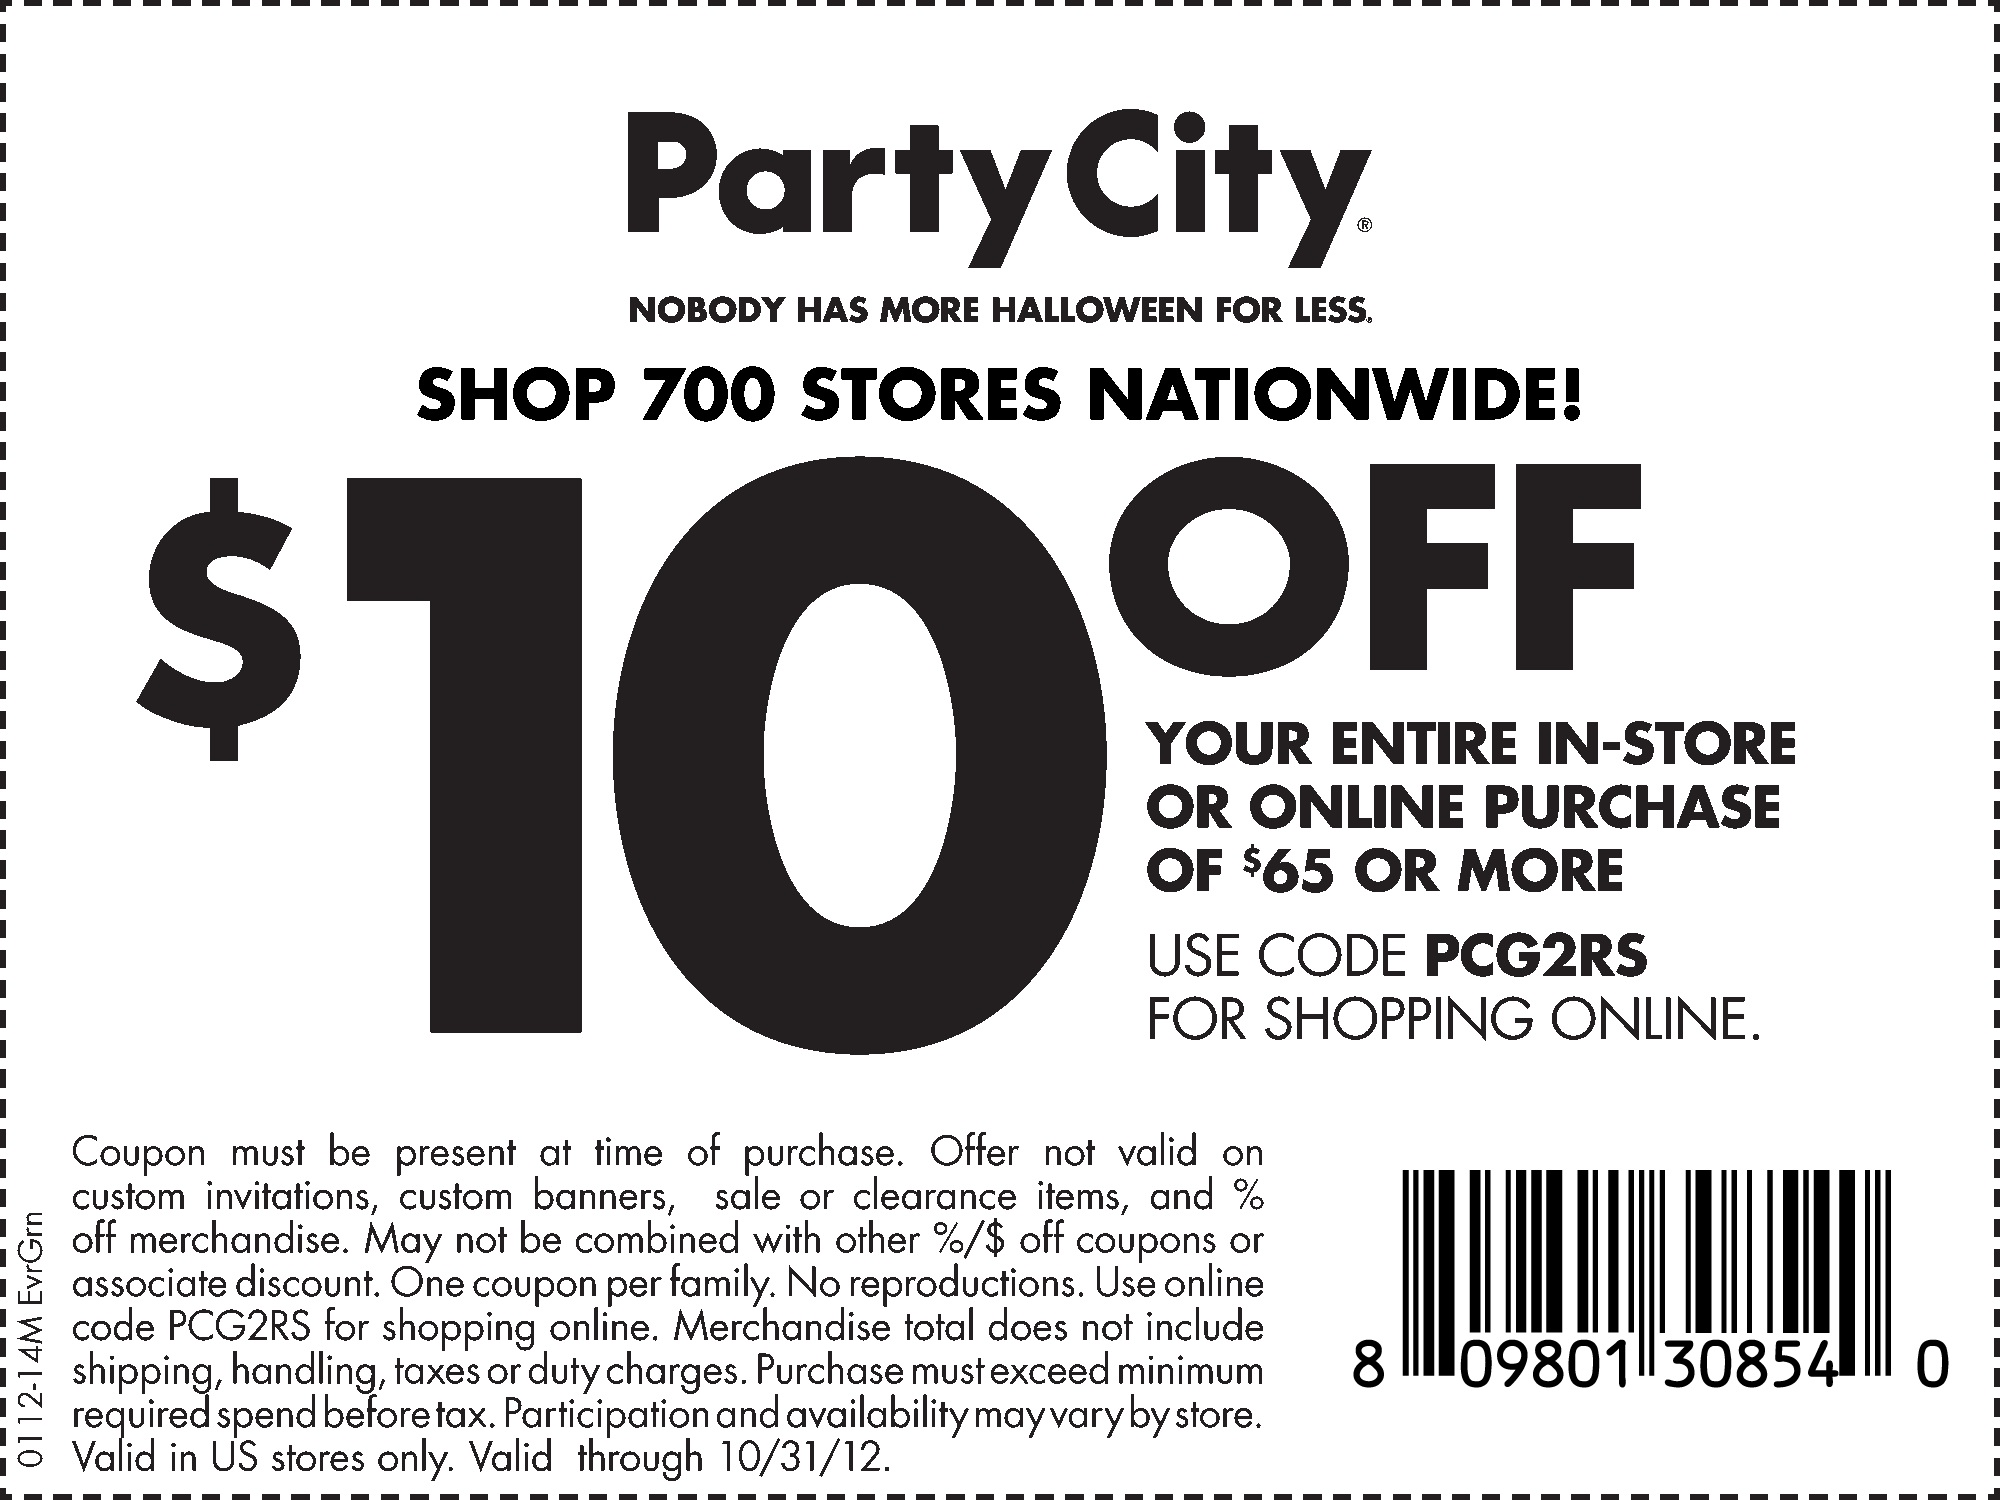 10-off-Party-city-coupon-october-2012